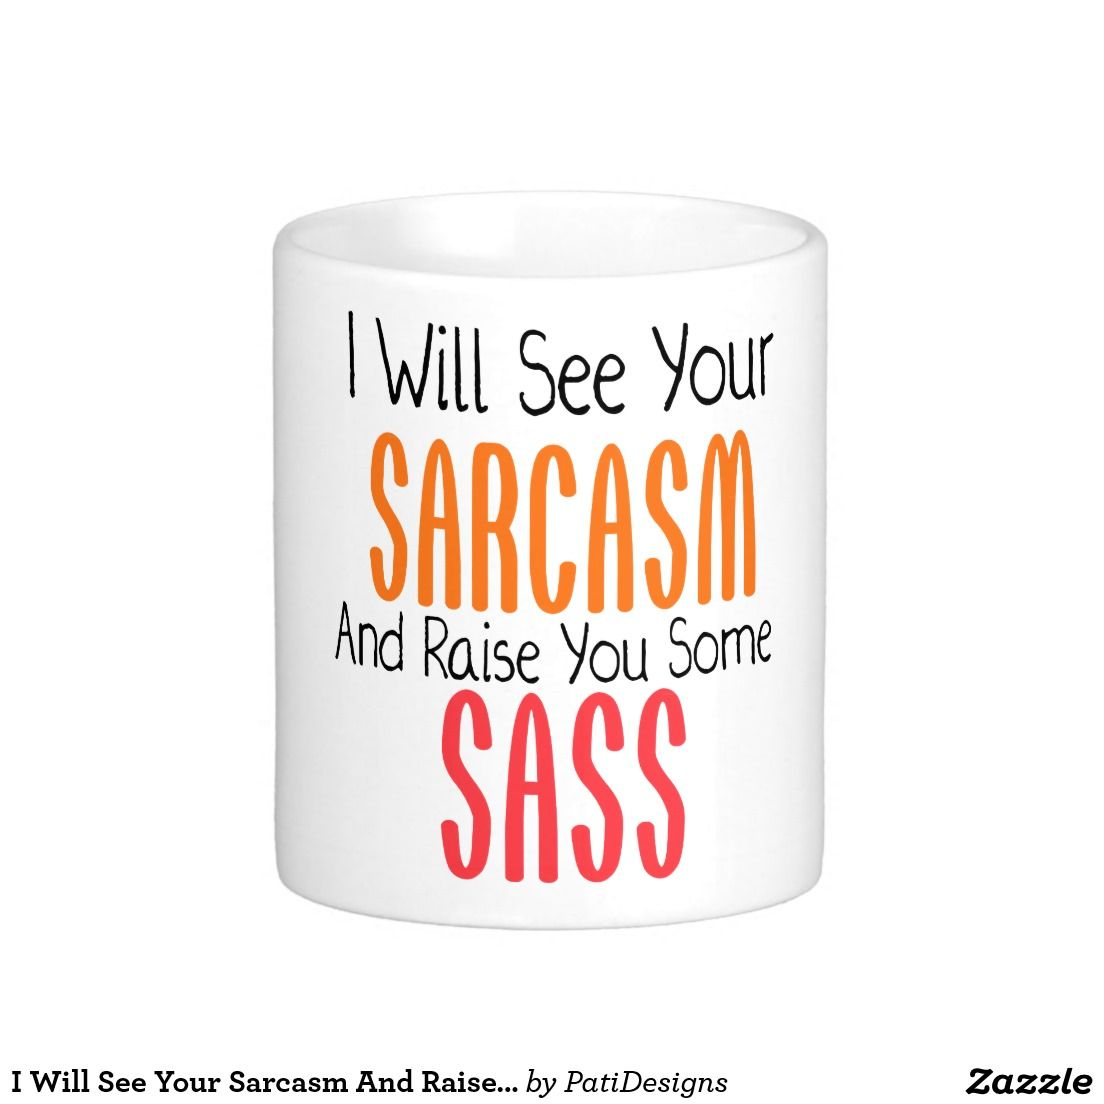 I Will See Your Sarcasm And Raise You Some Sass Coffee Mug Zazzle Com White Coffee Mugs Mugs Coffee Love